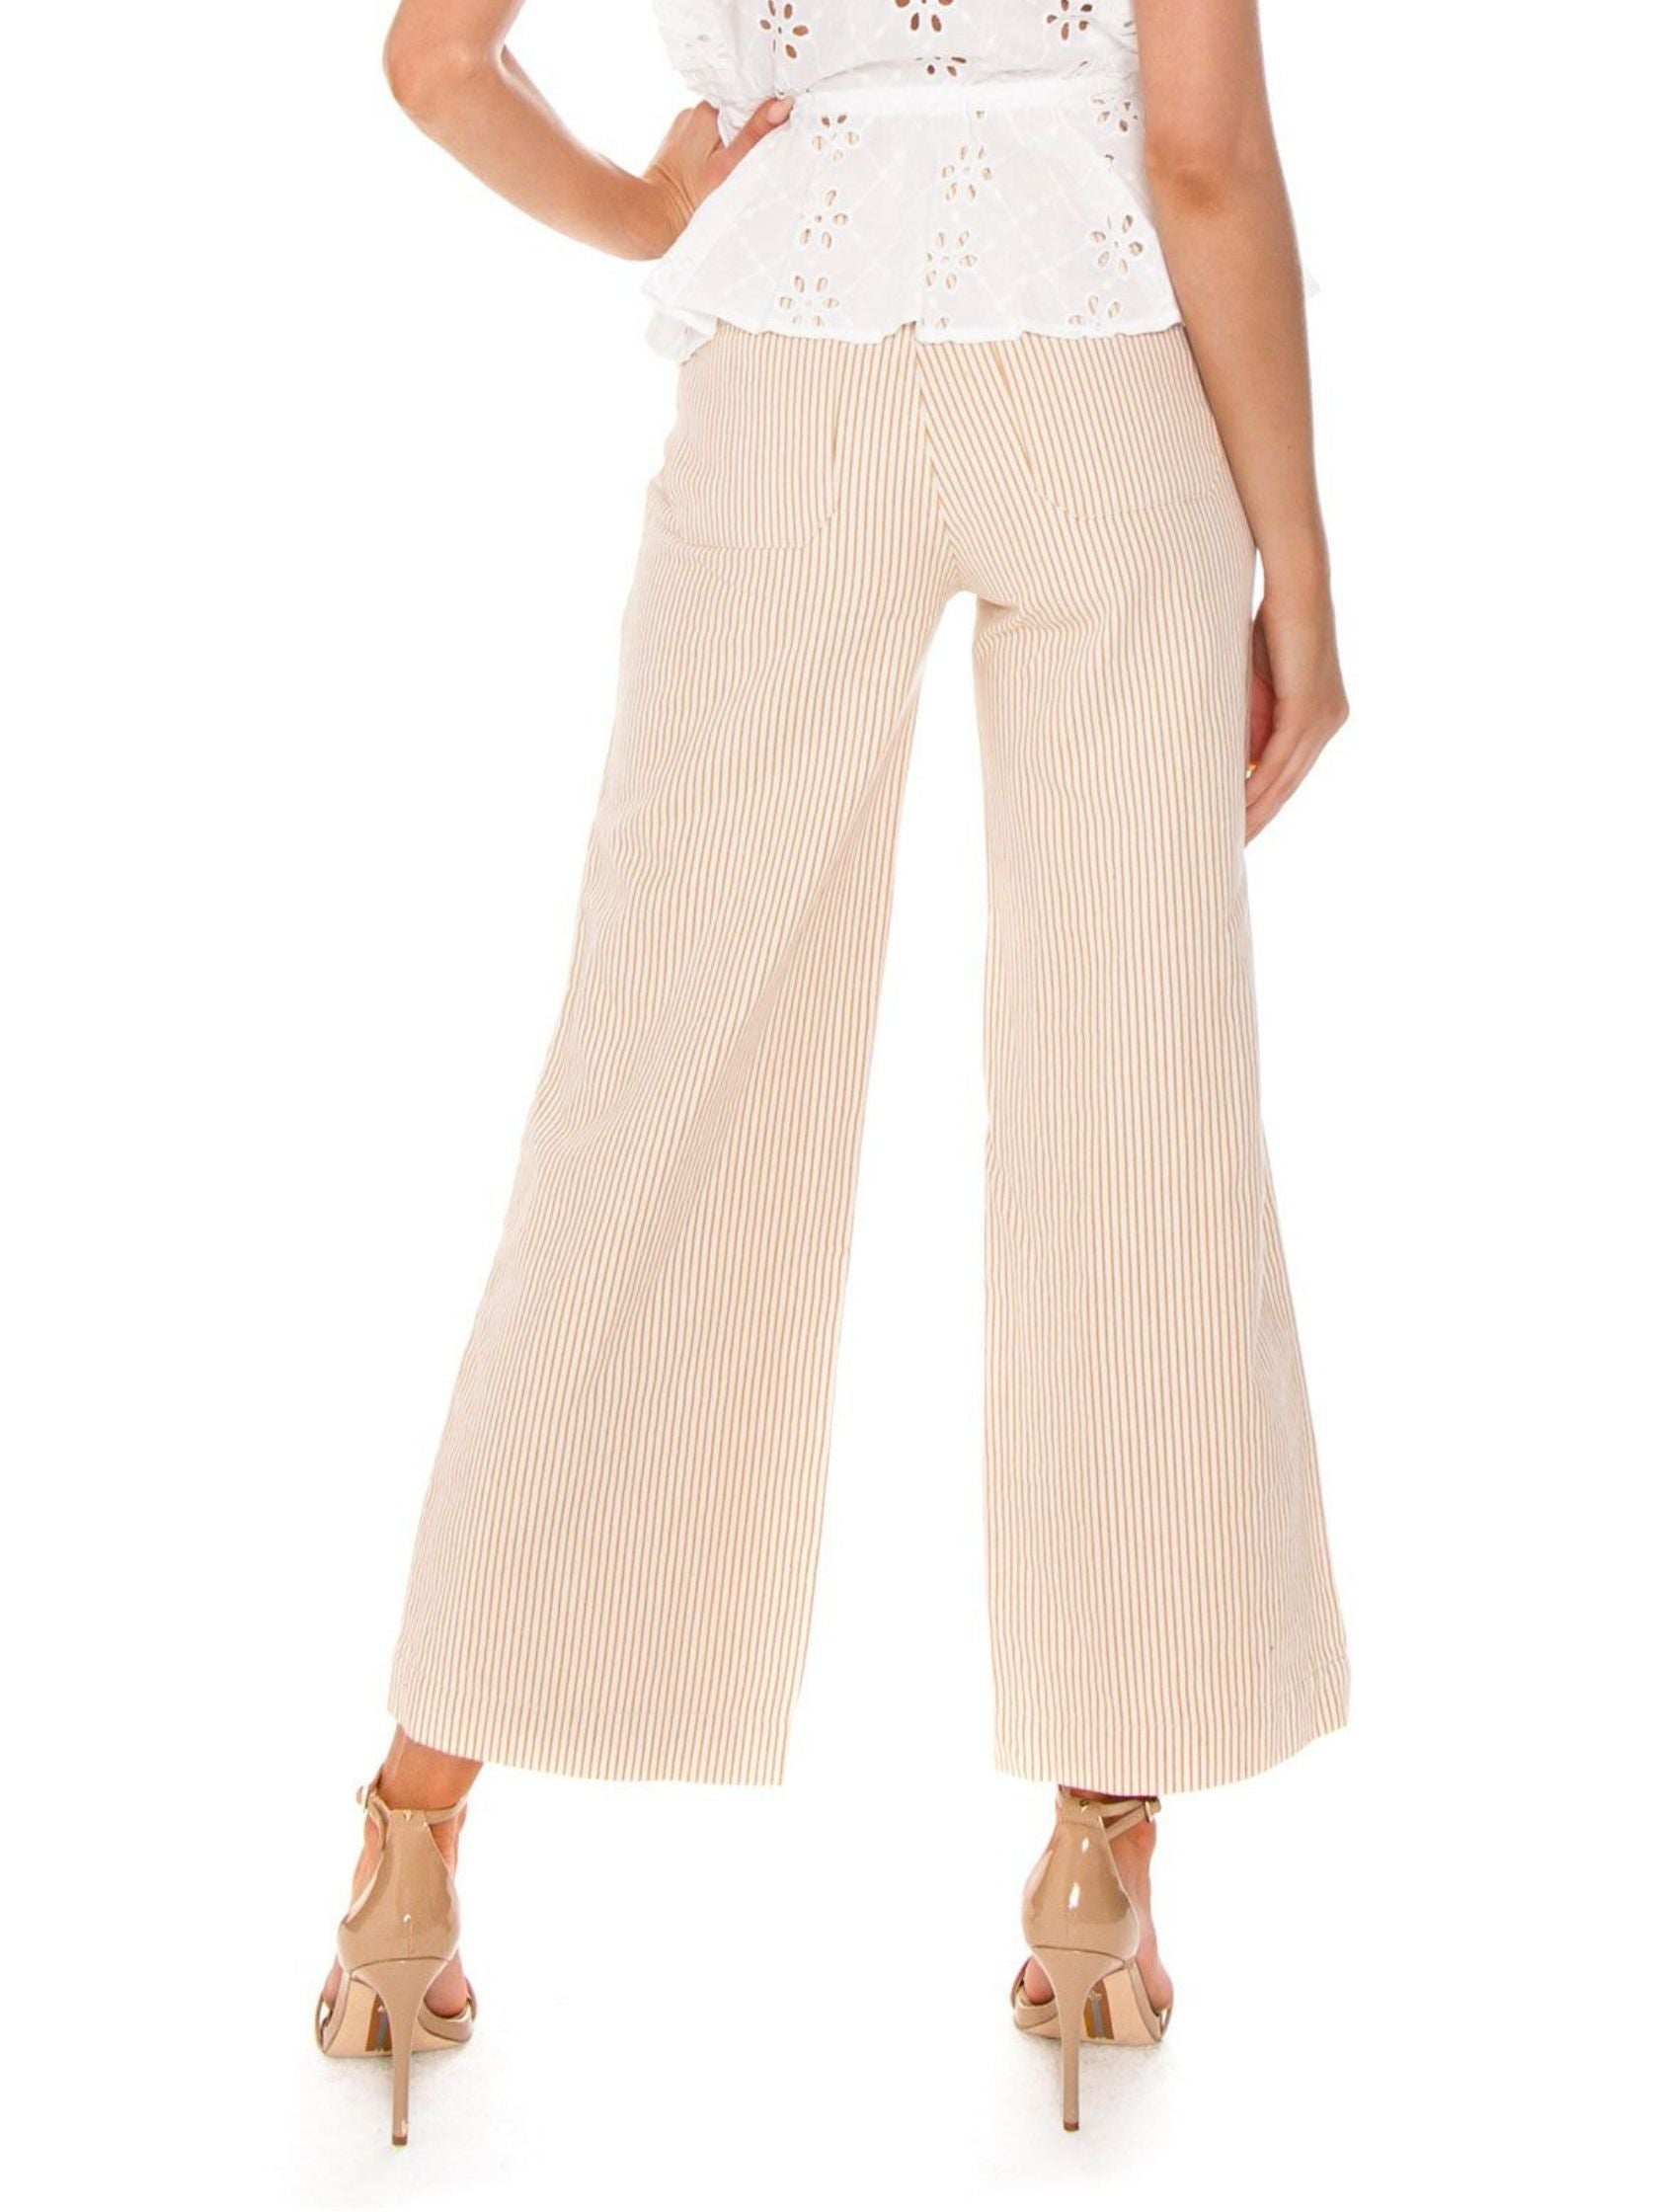 Women outfit in a pants rental from ROLLAS called Old Mate Pant